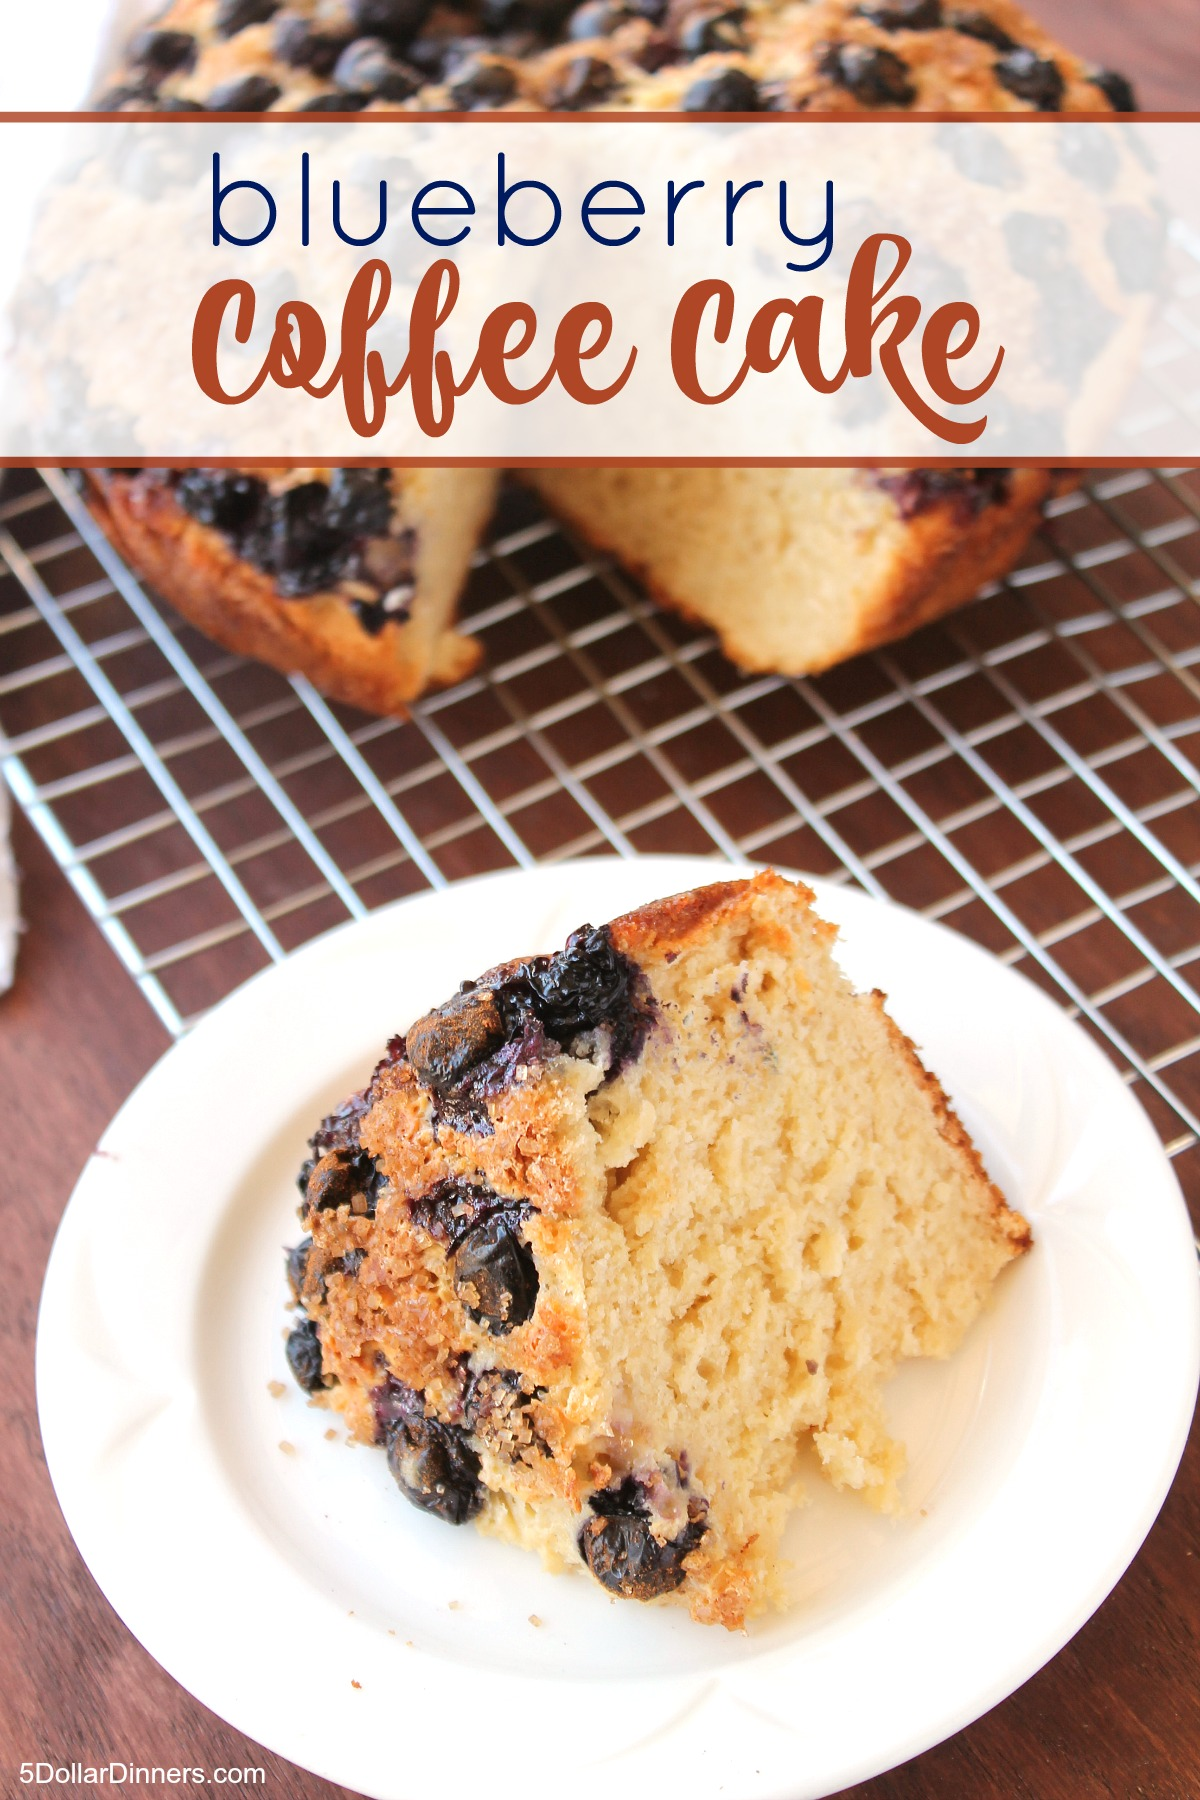 Blueberry Coffee Cake from 5DollarDinners.com